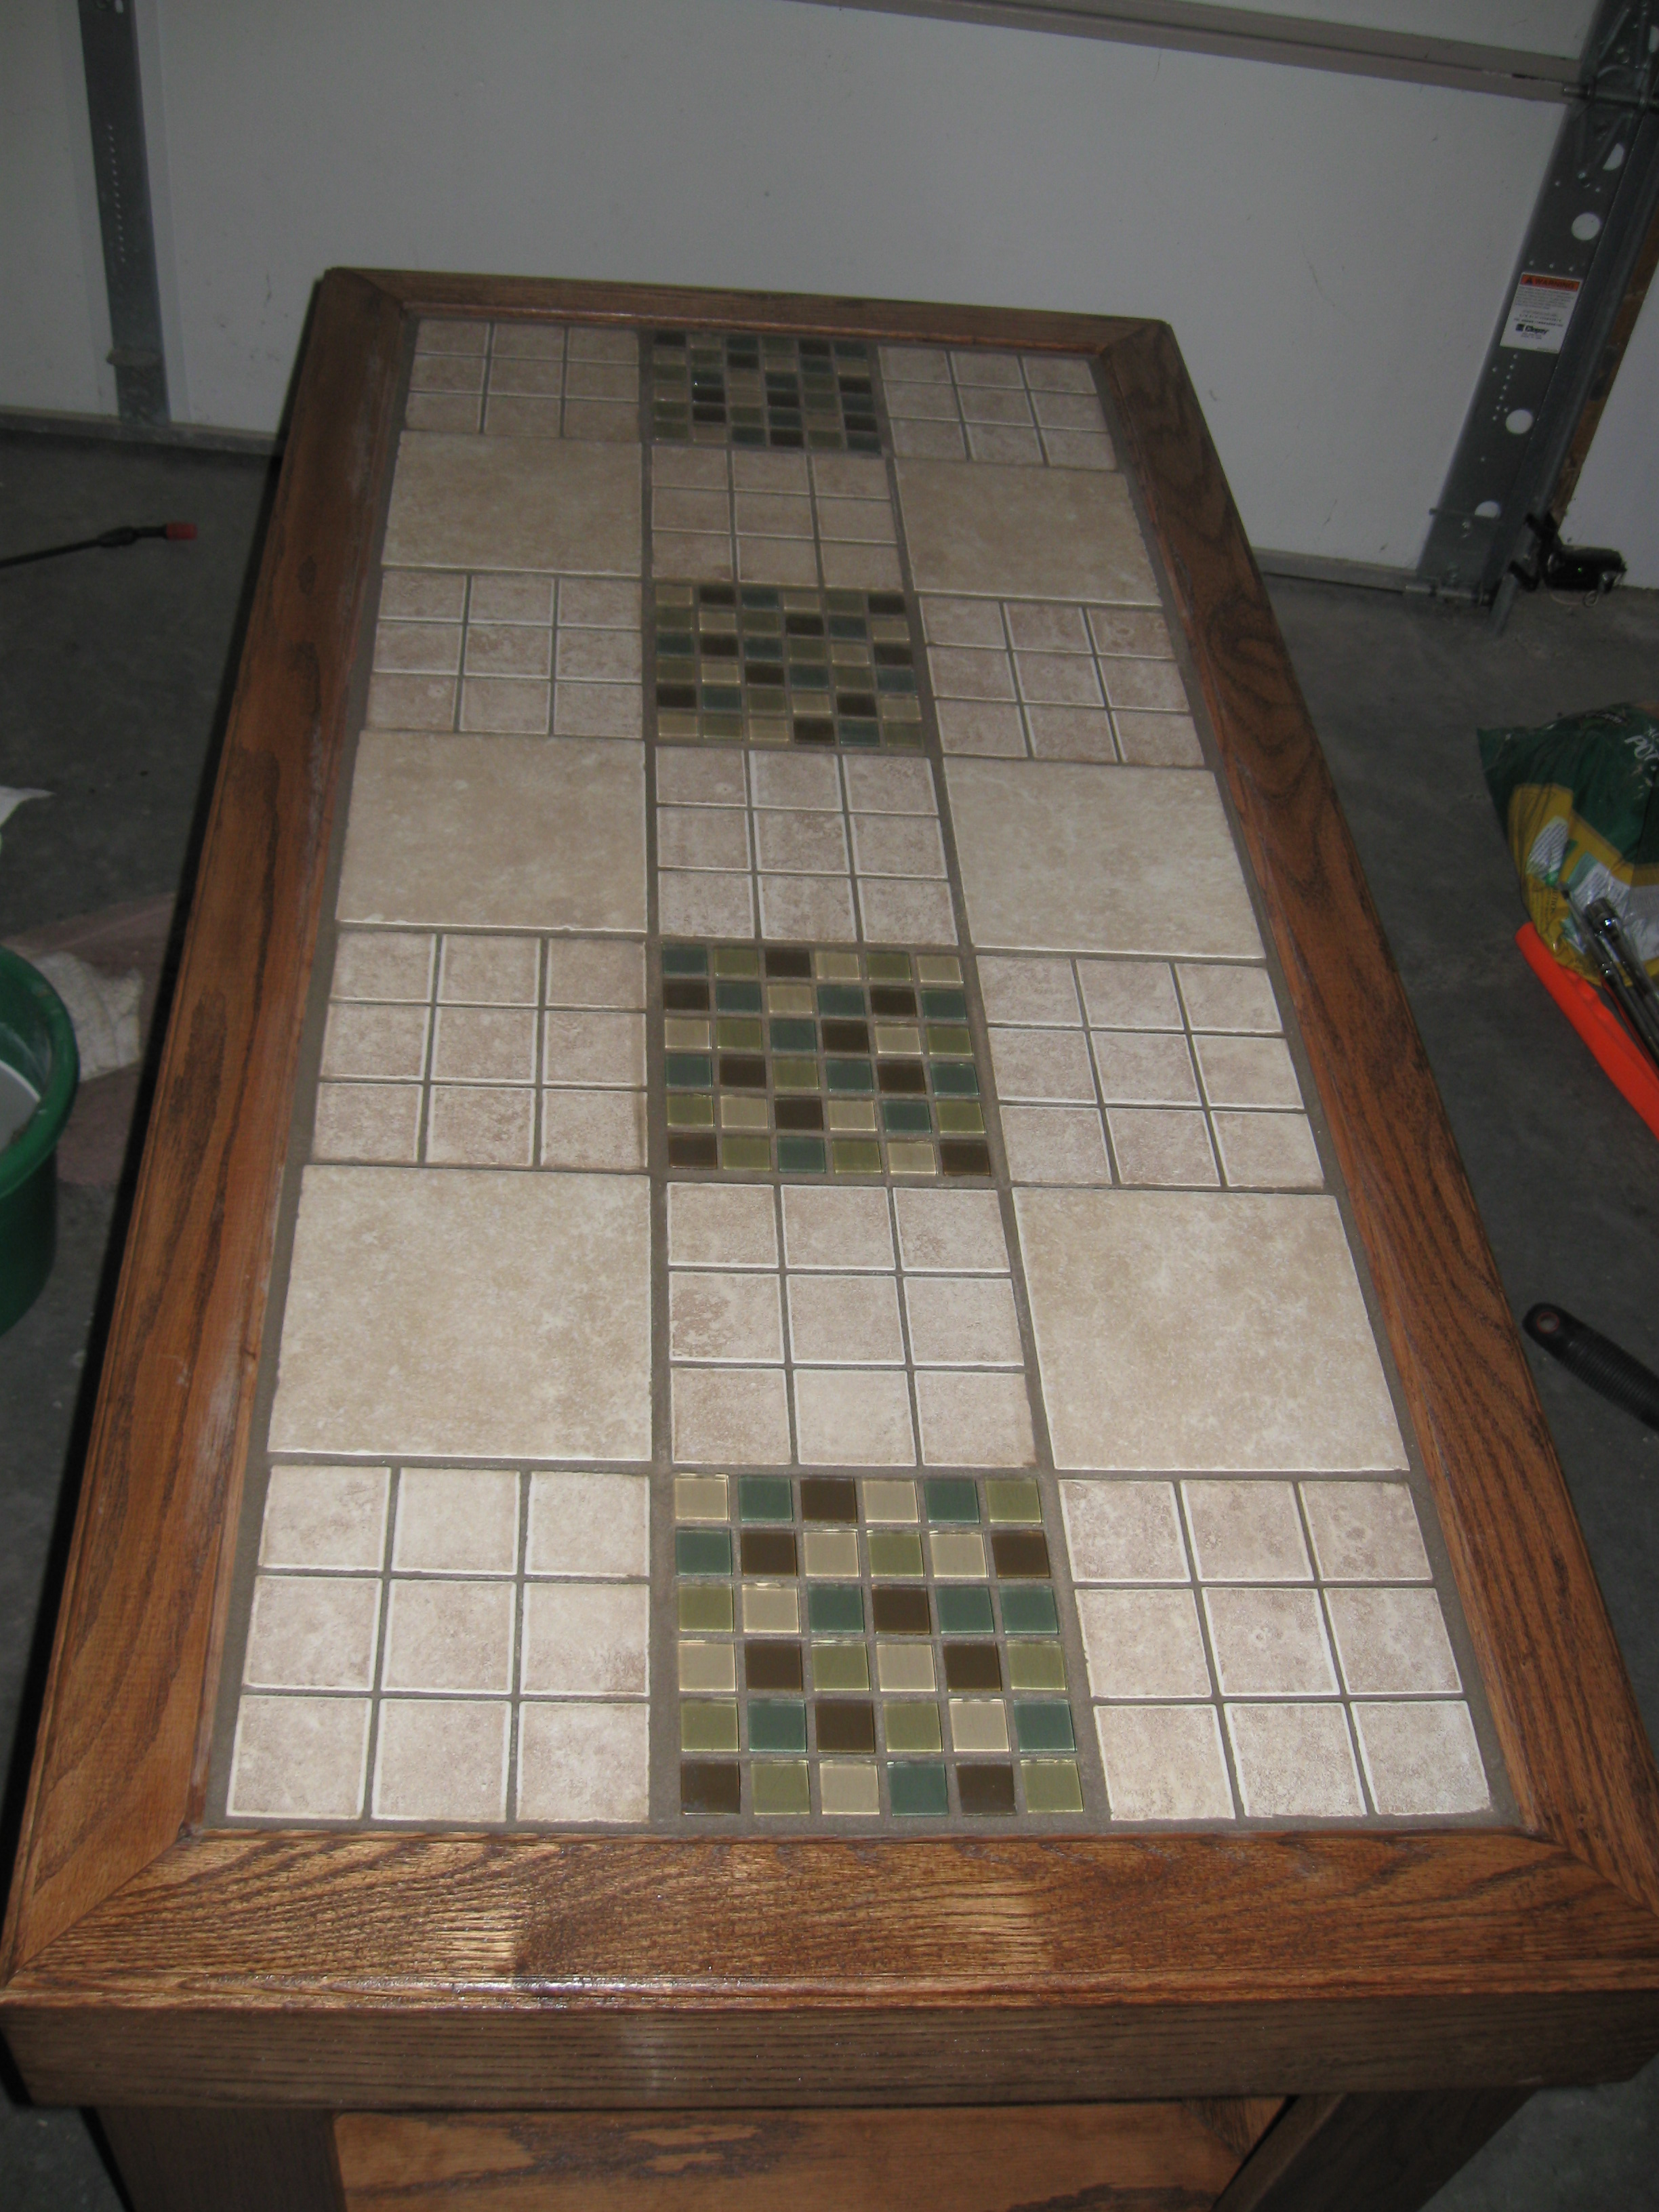 Replacement Tiles For Patio Table : replacement, tiles, patio, table, Table, Steps, Instructables